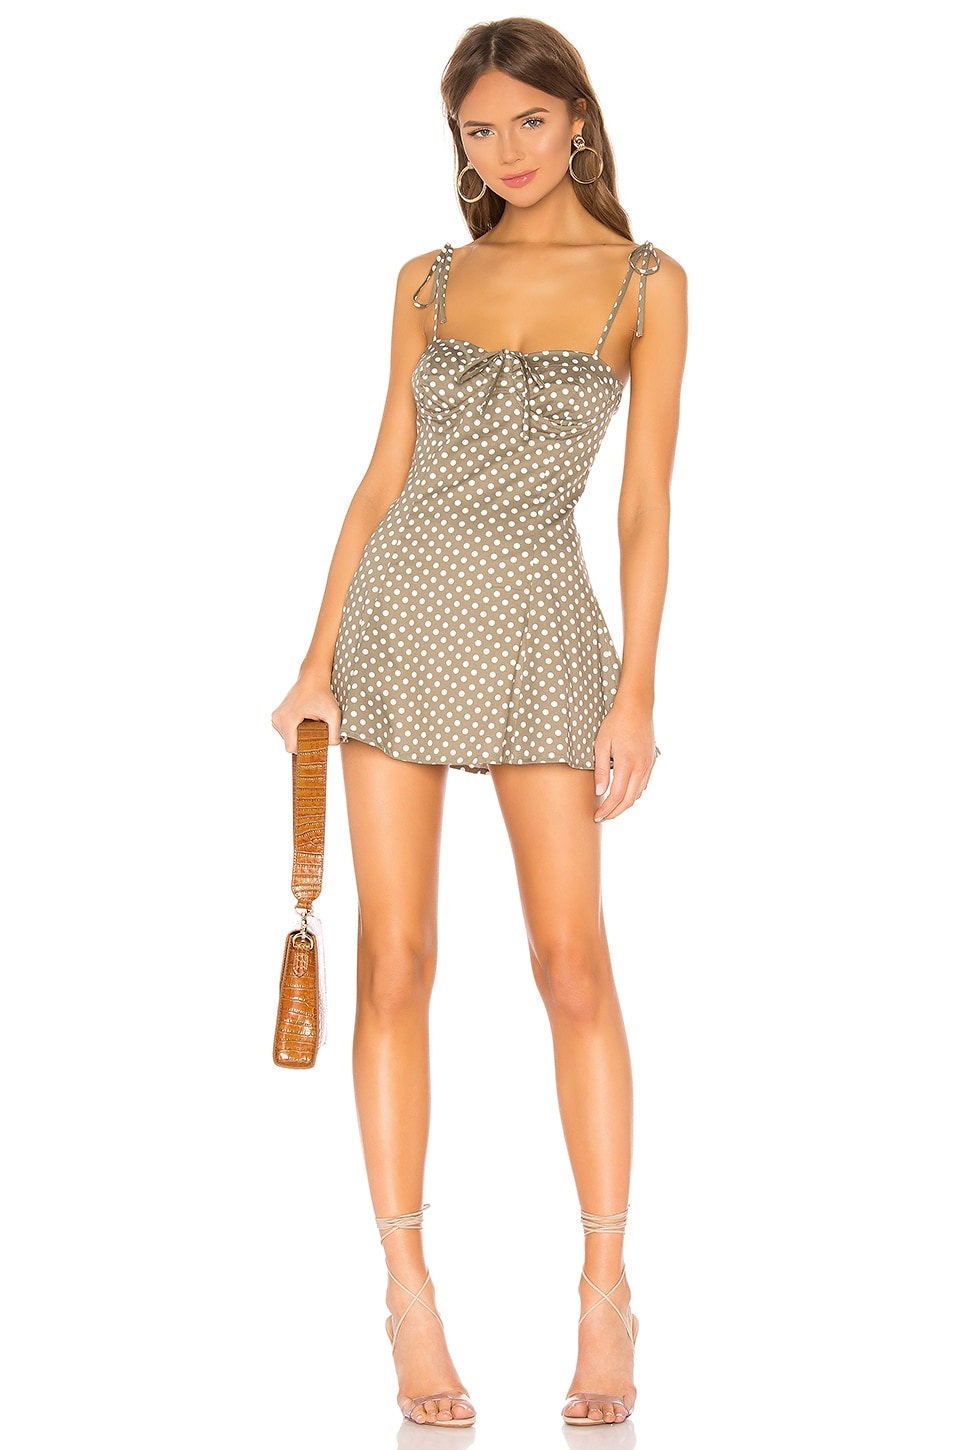 MAJORELLE Tahoe Dress in Green & White Dot